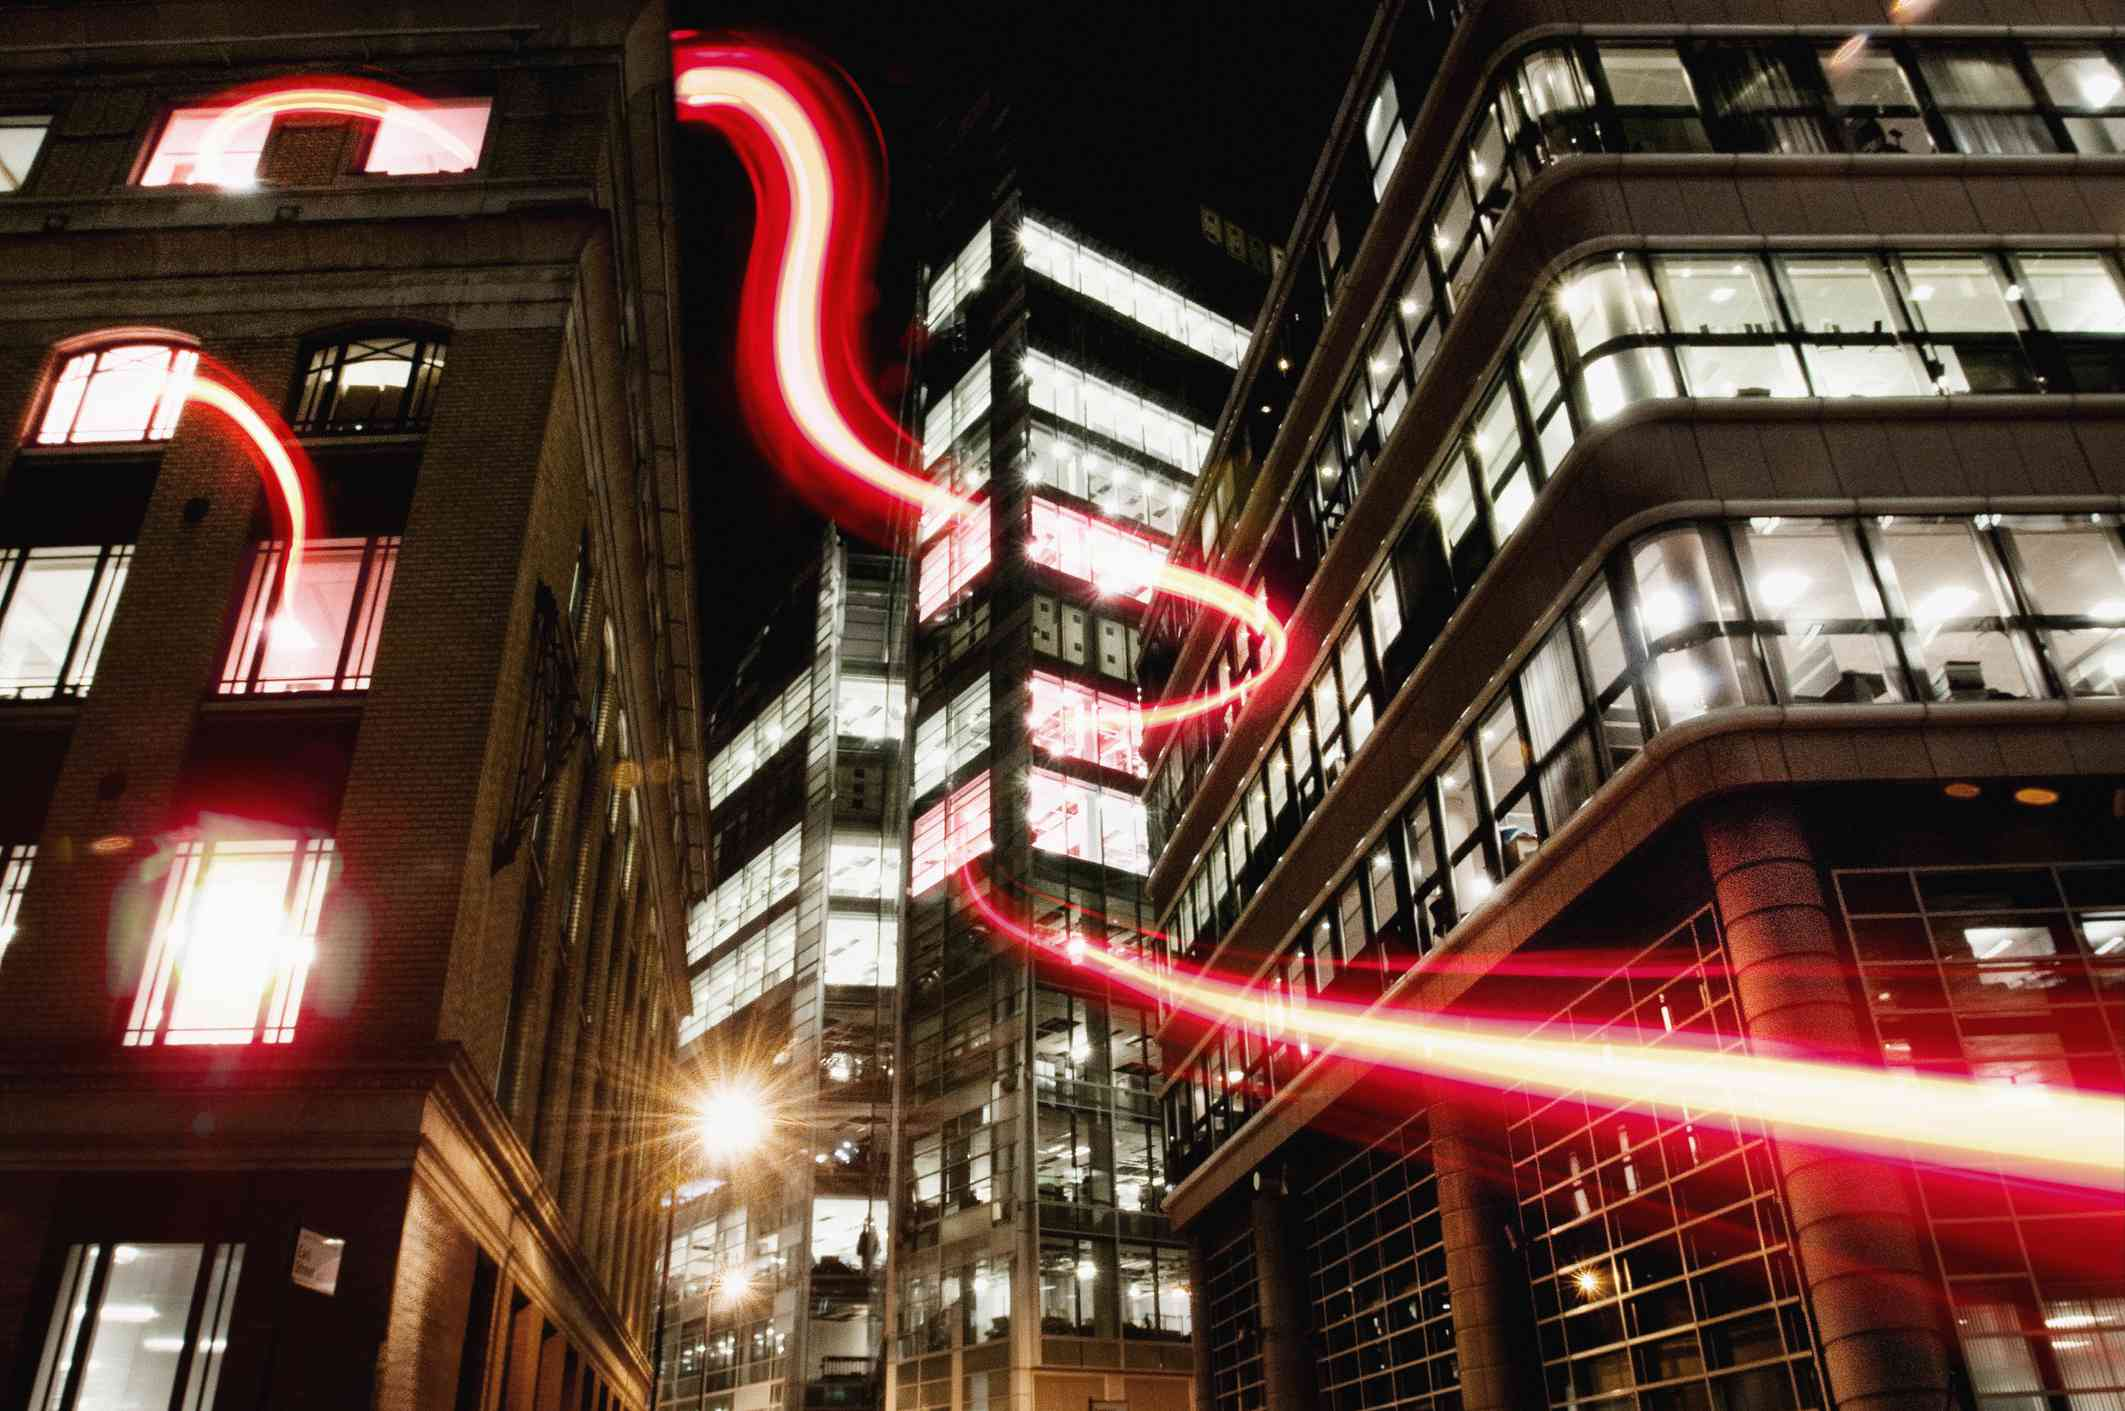 A concept image with a dynamic fibre optic light trail running through and around buildings in a city.